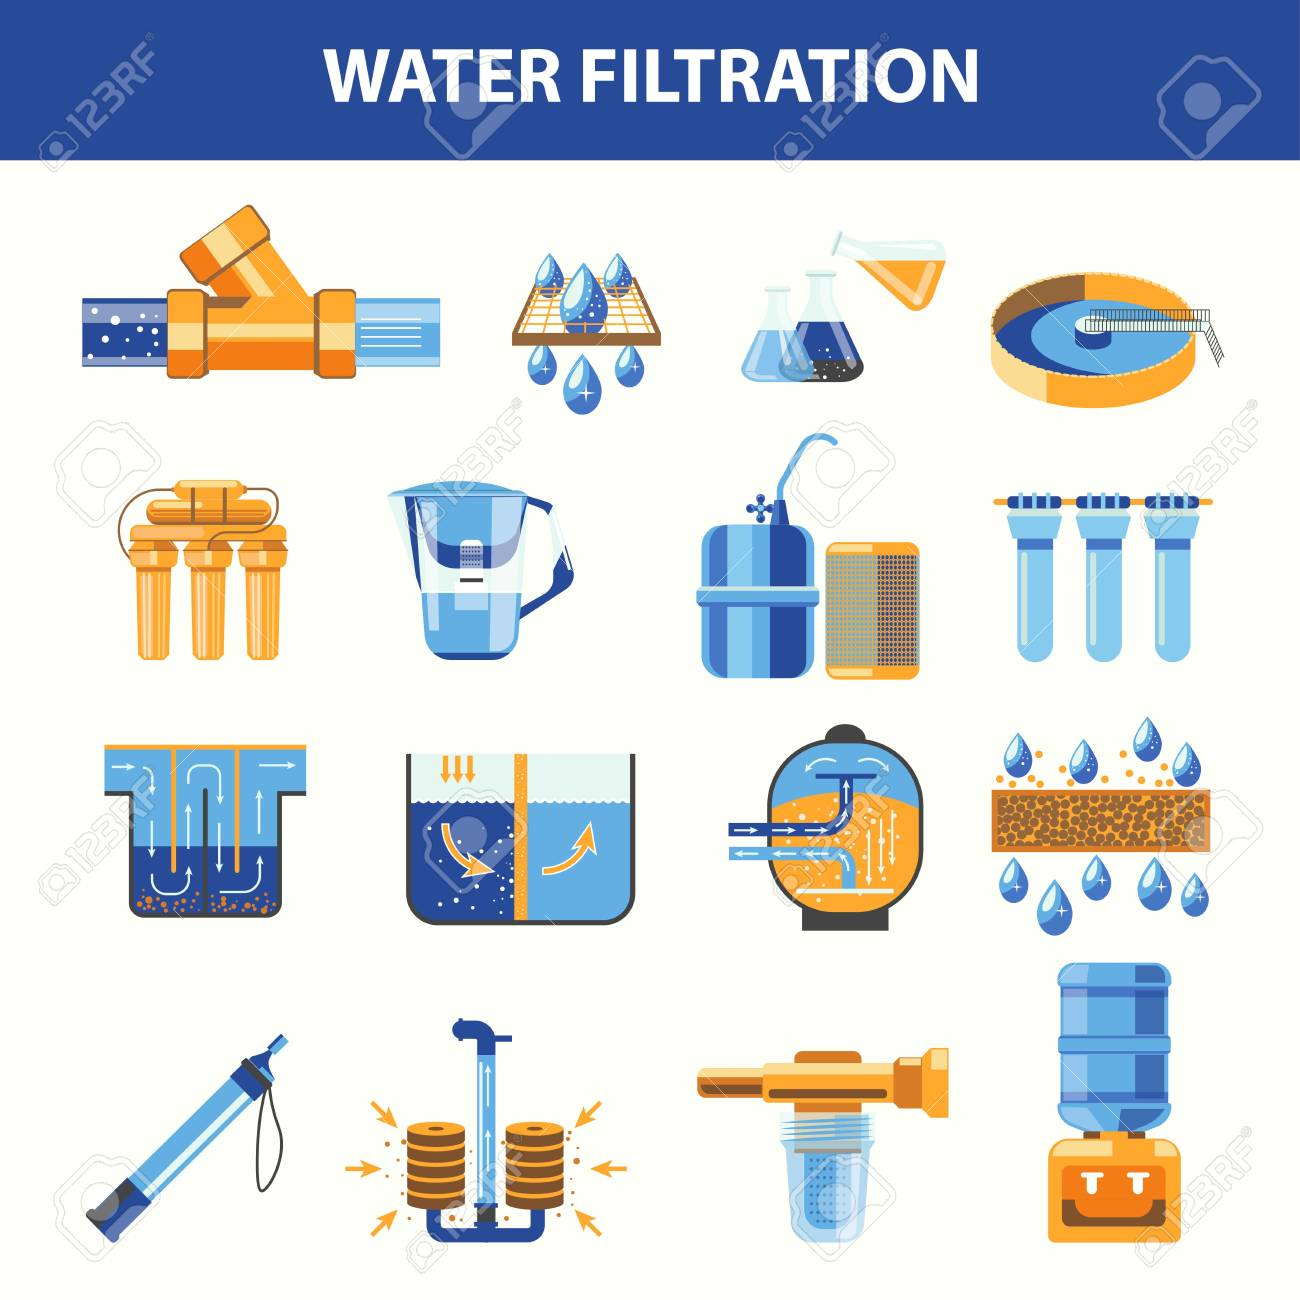 Water filtration processes with special modern technologies set - 96585004